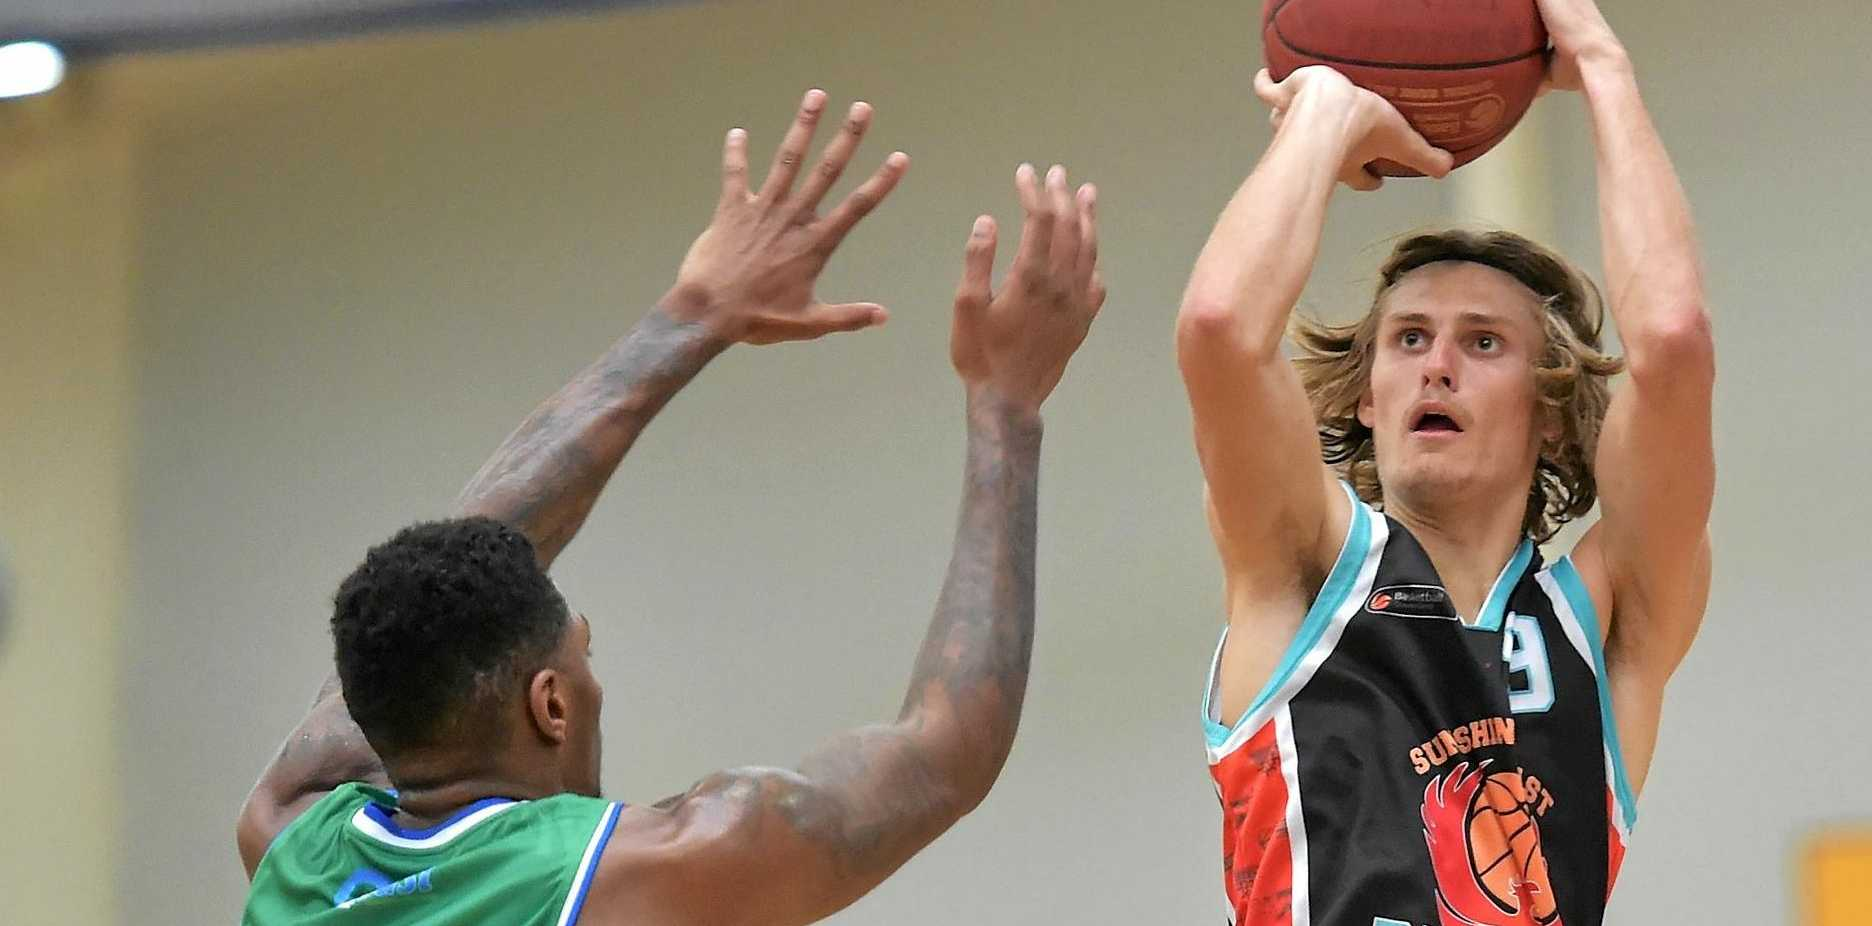 FIRE-UP: The Sunshine Coast Phoenix will look to finish the season strong as they travel to Rockhampton for Friday night's match.  Pictured is Phoenix player Matthew Kenyon.